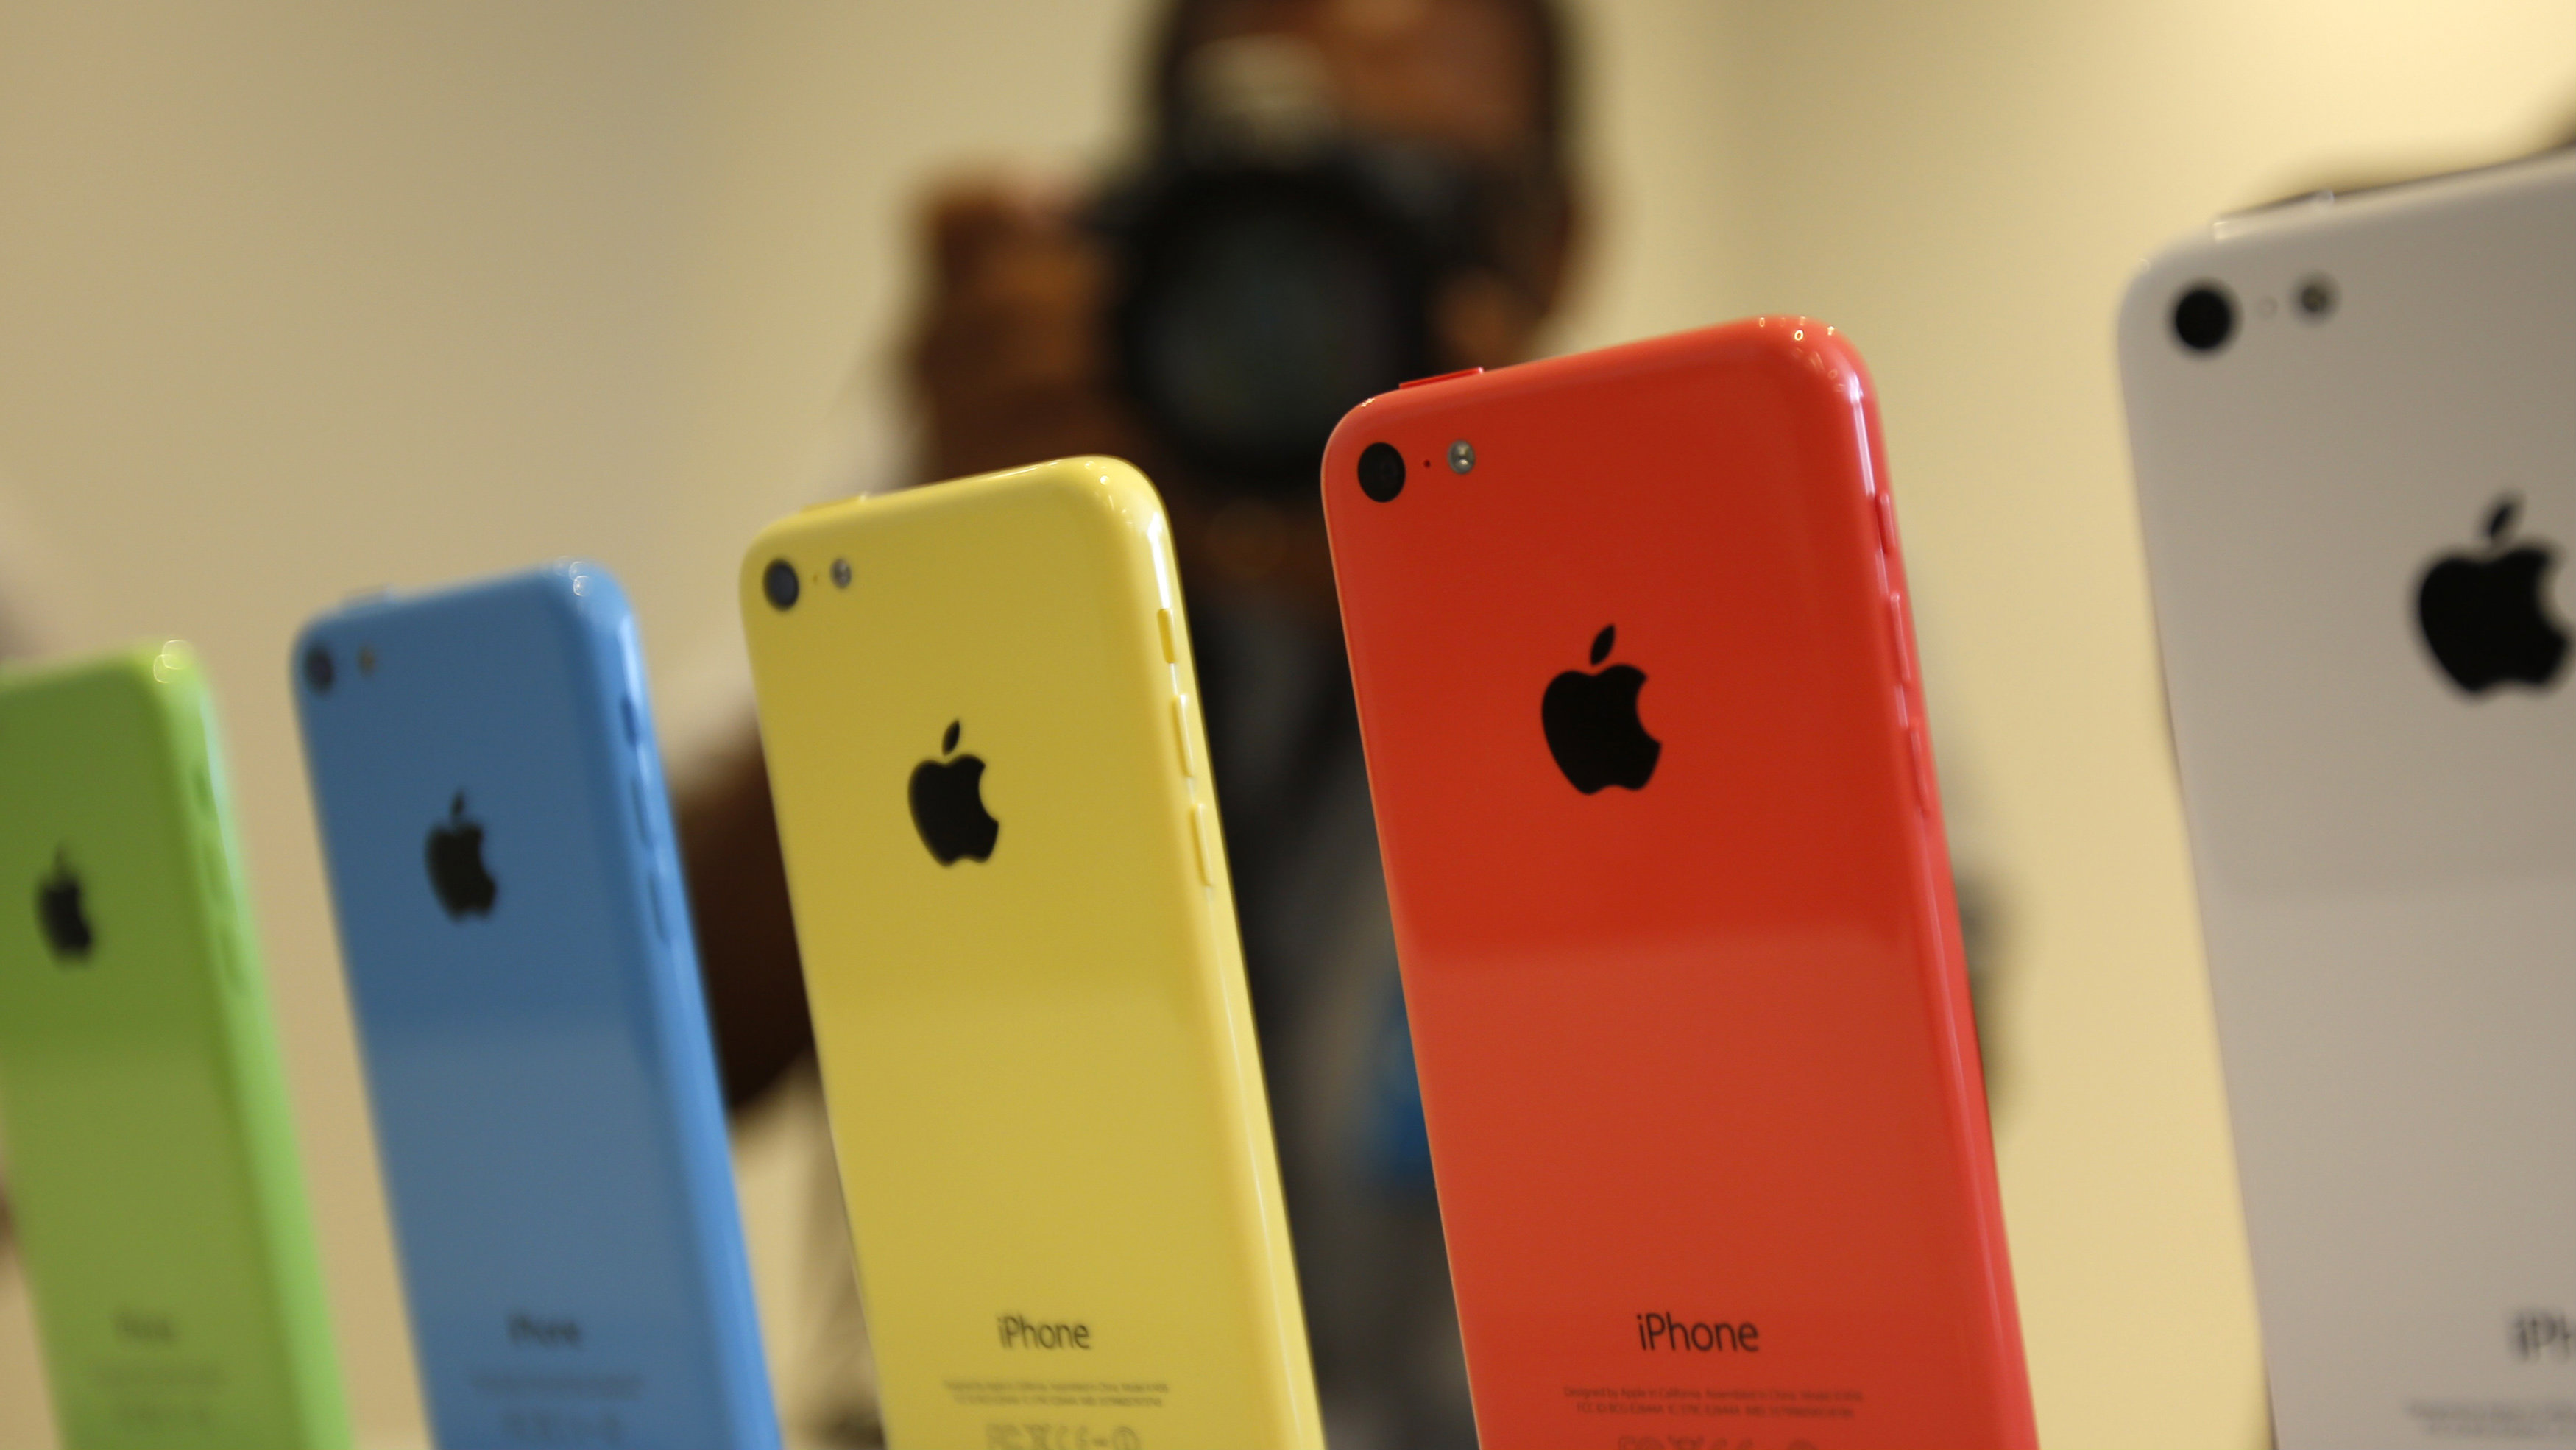 The five colors of the new iPhone 5C are seen after Apple Inc's media event in Cupertino, California September 10, 2013.